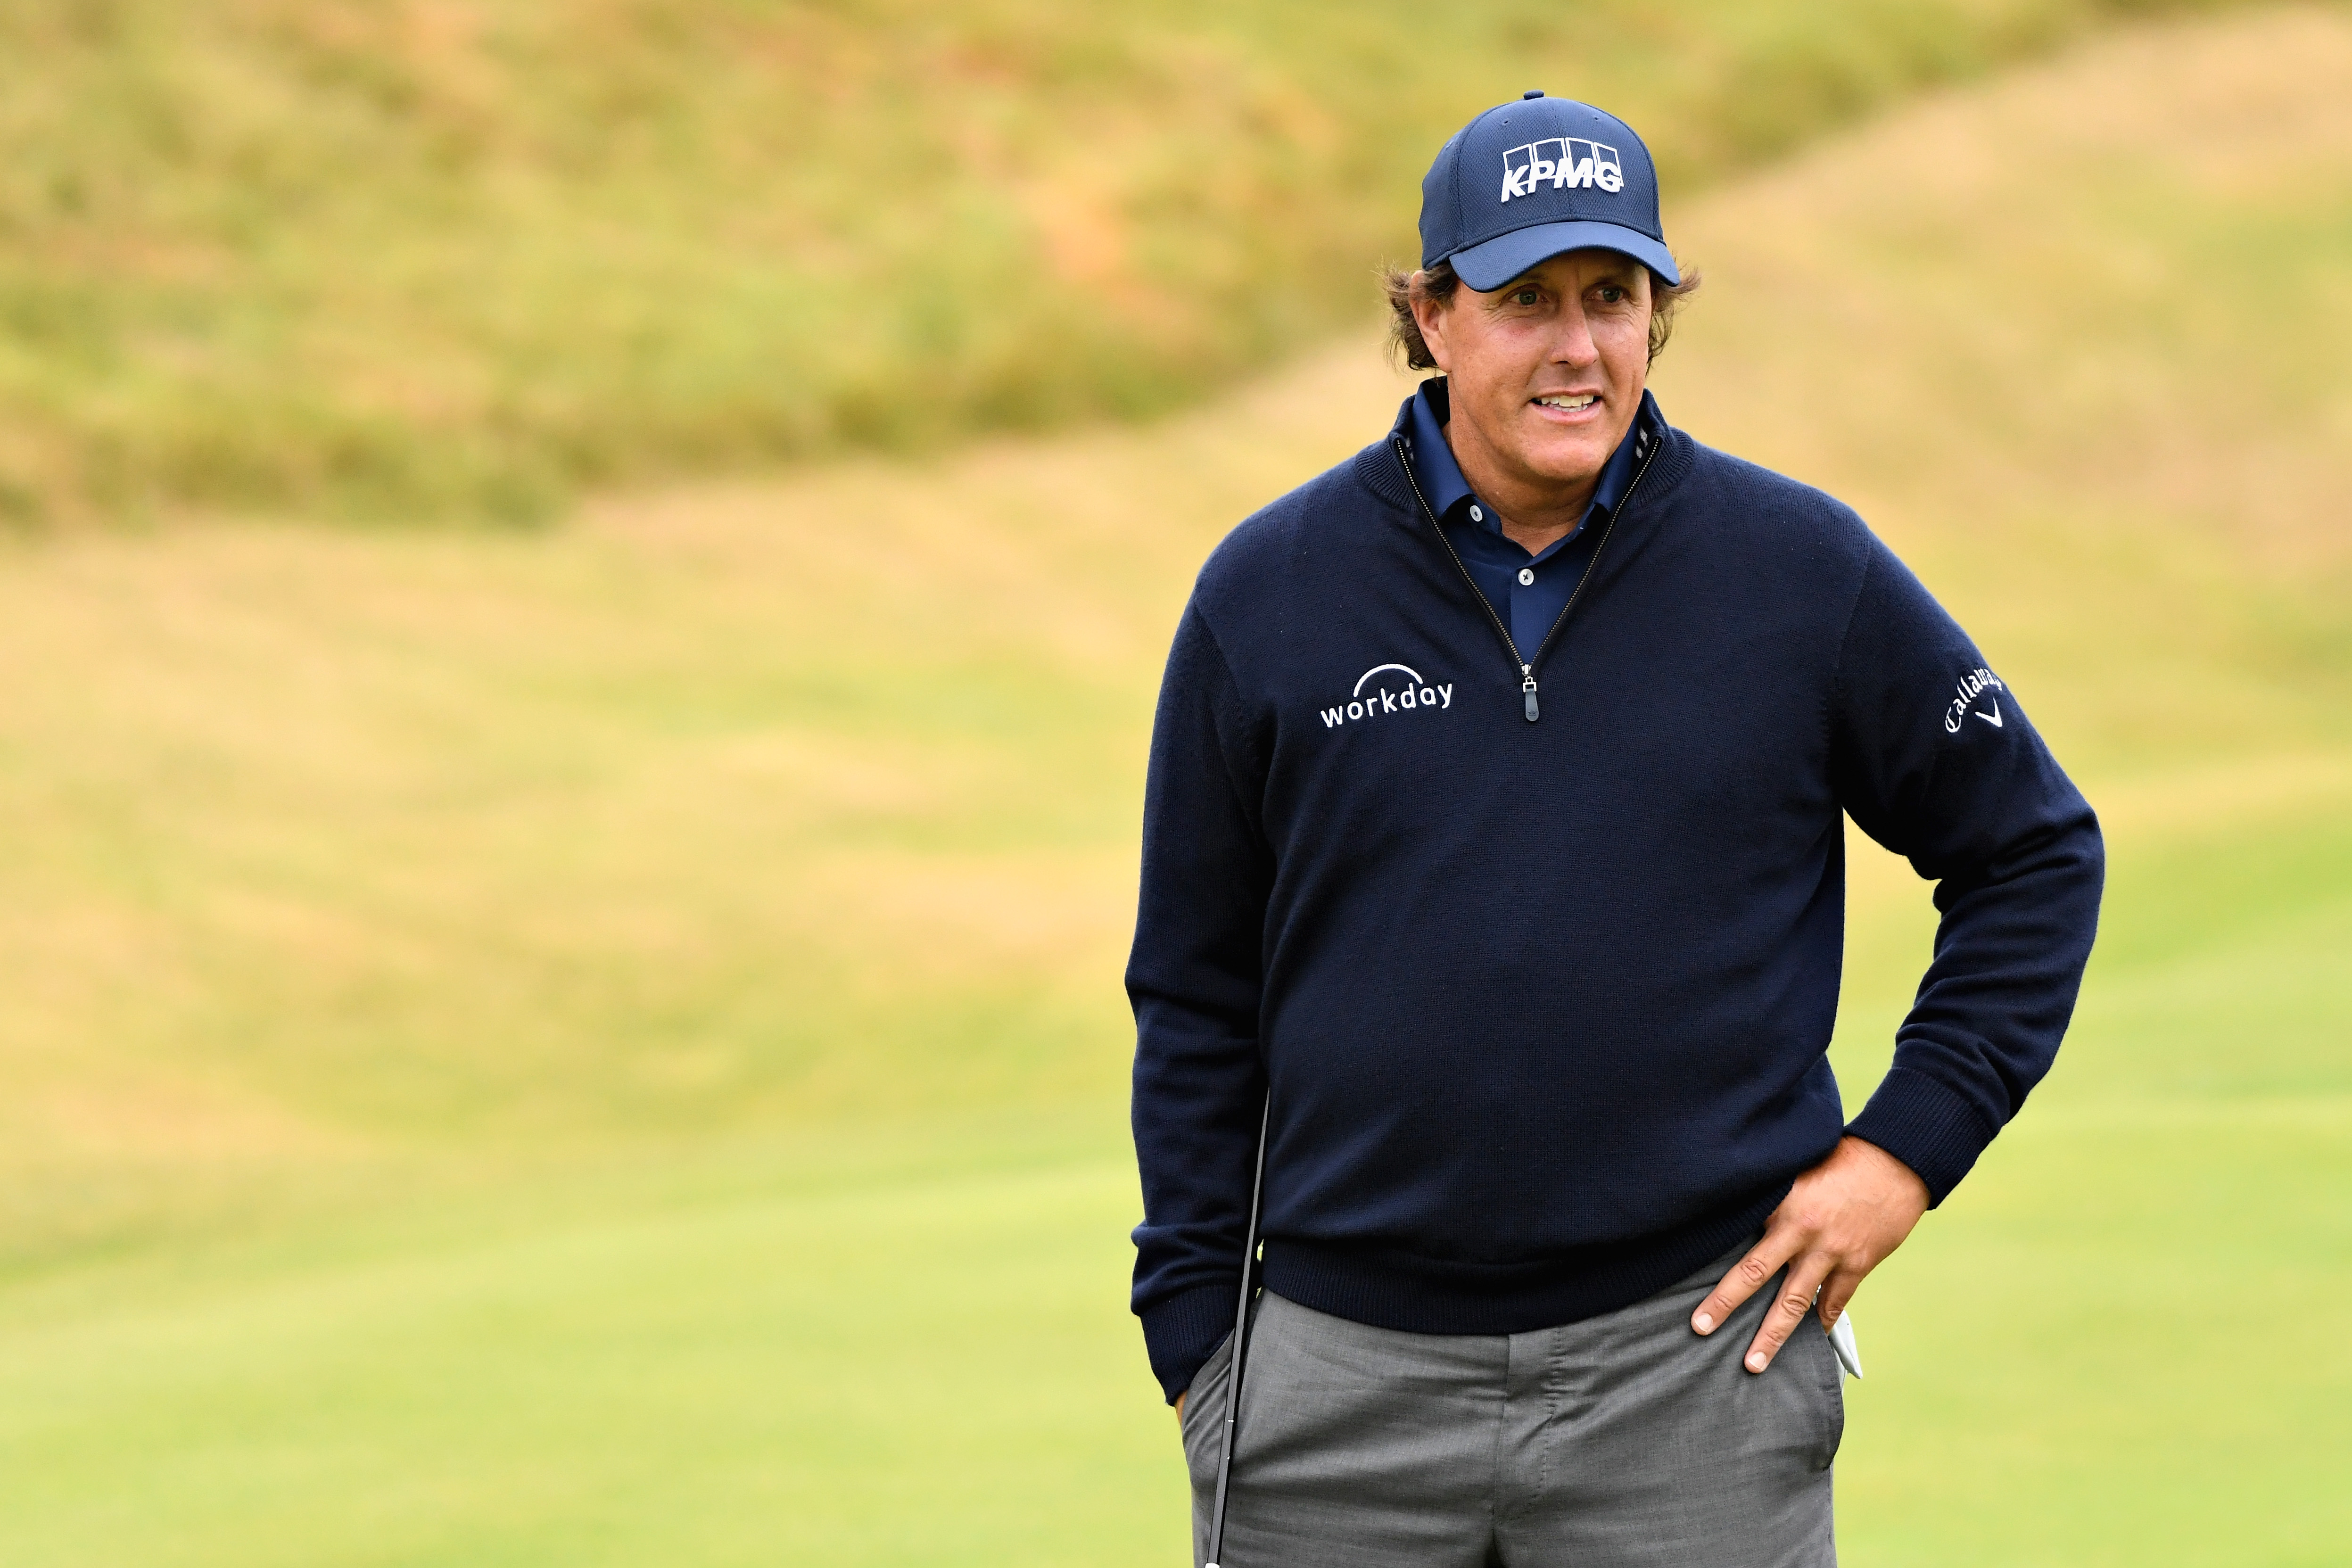 Mickelson takes aim at commentator Chamblee